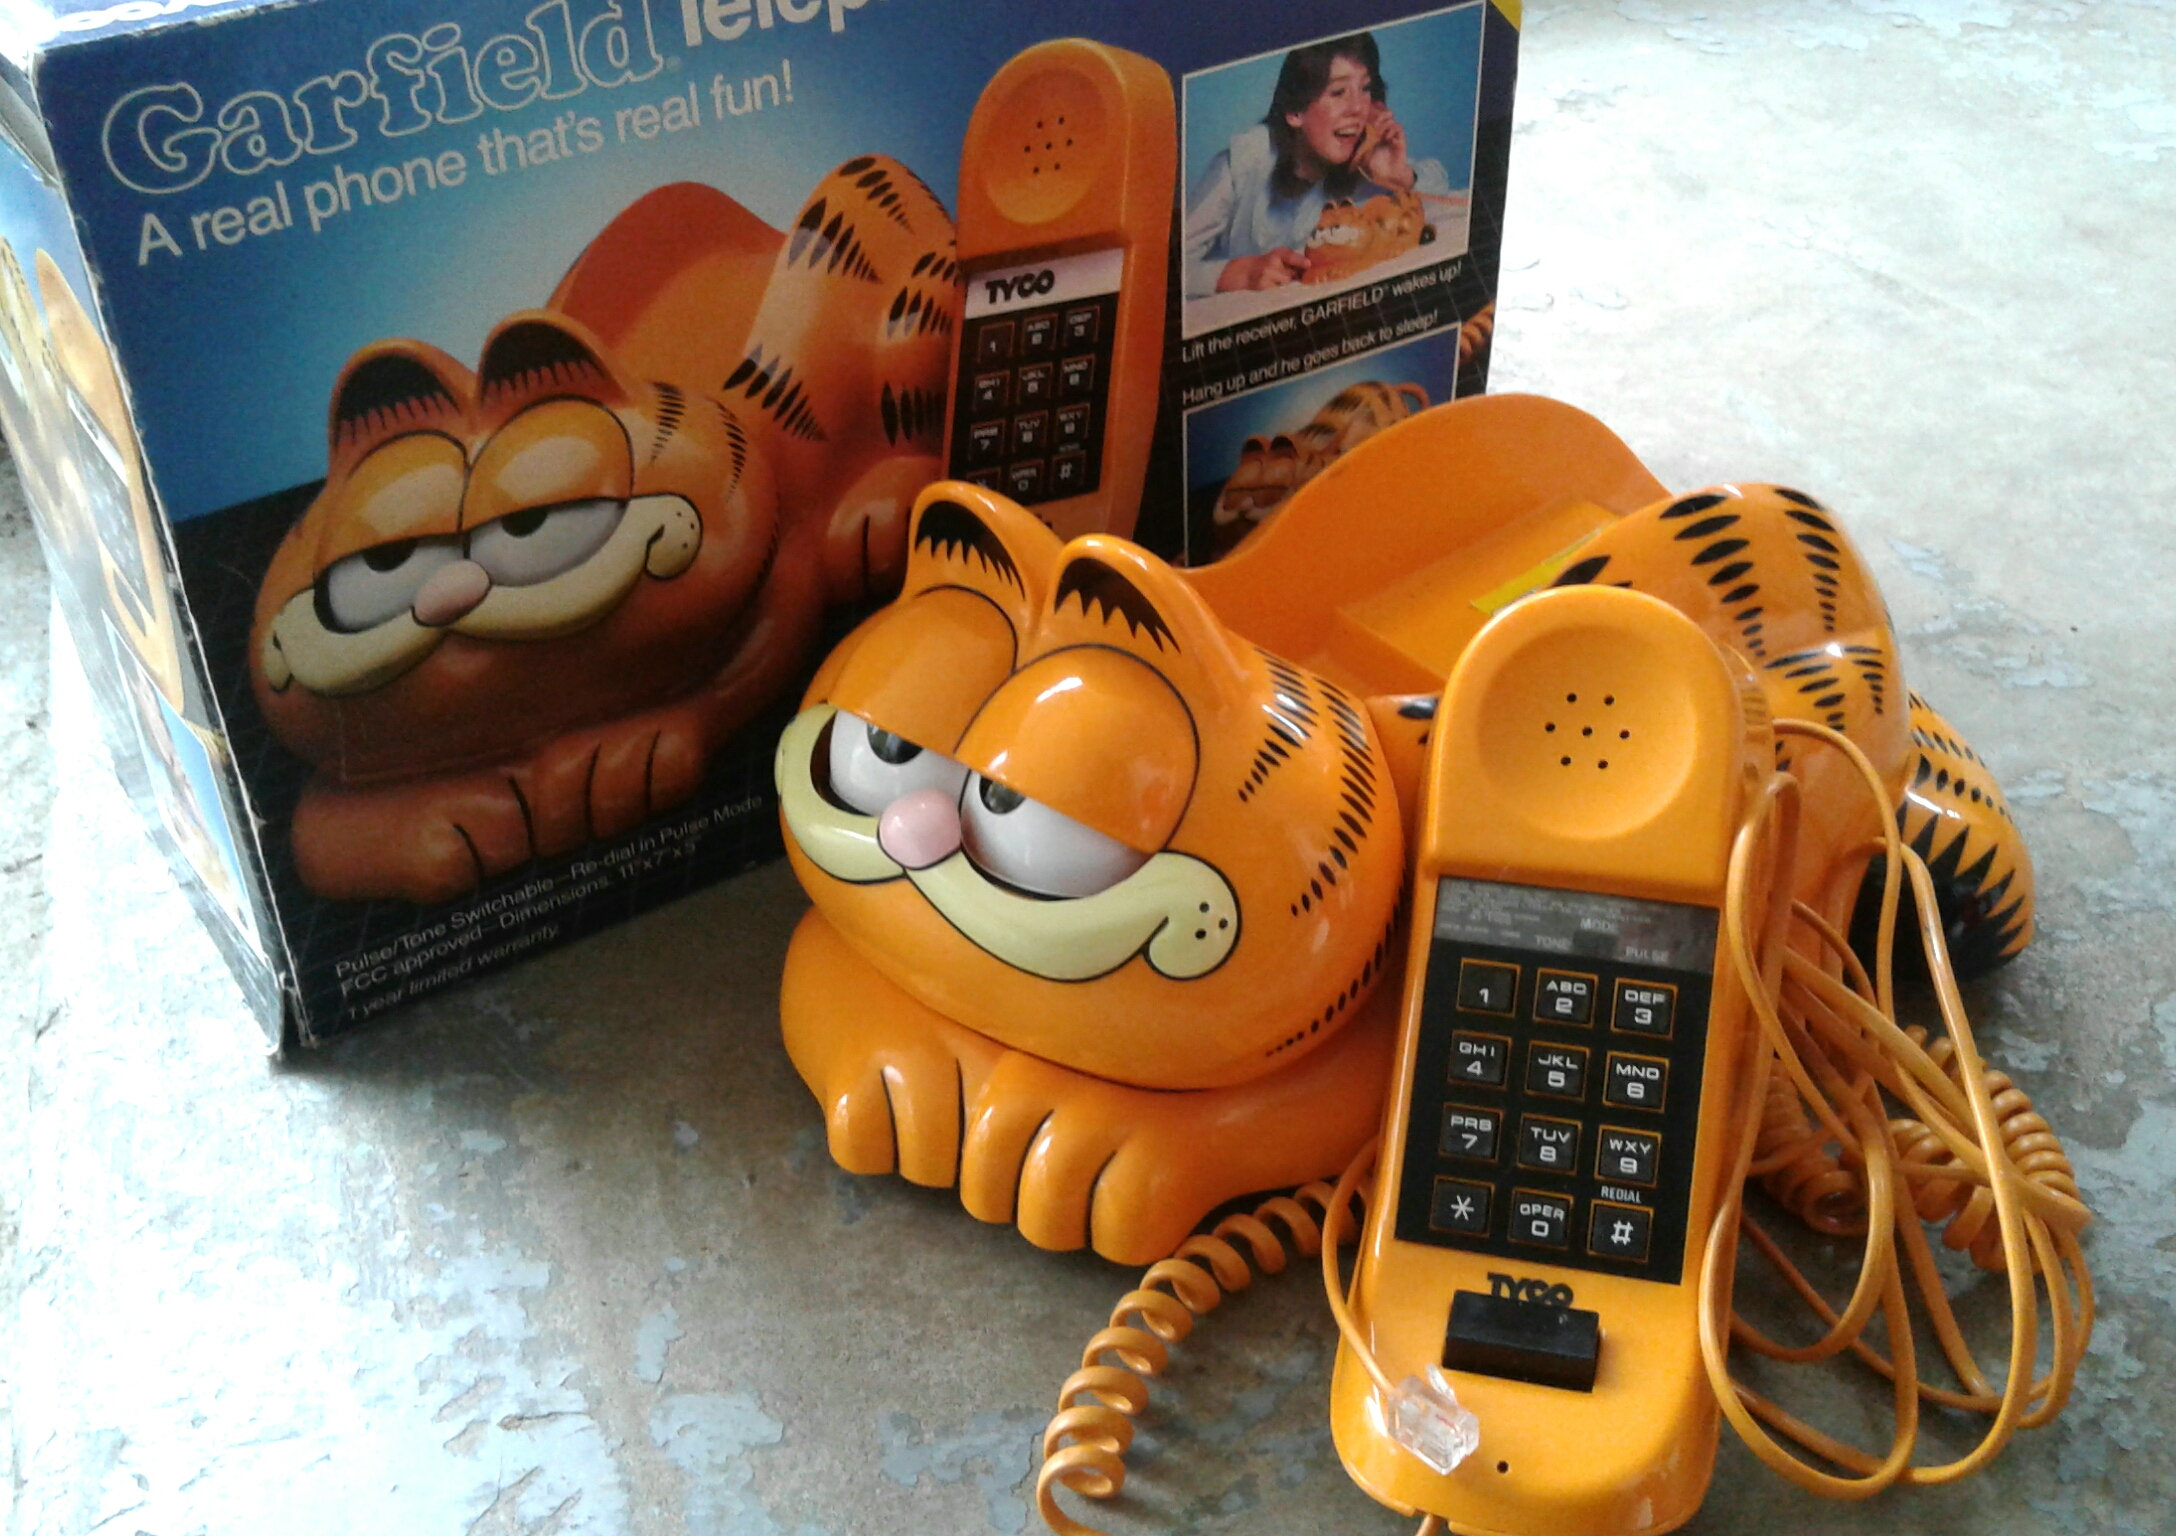 I wanted this phone so badly, the eyes are closed until you take the phone off the receiver. So darn cute! This one from the 80s is available from  Rathgars   Collectables